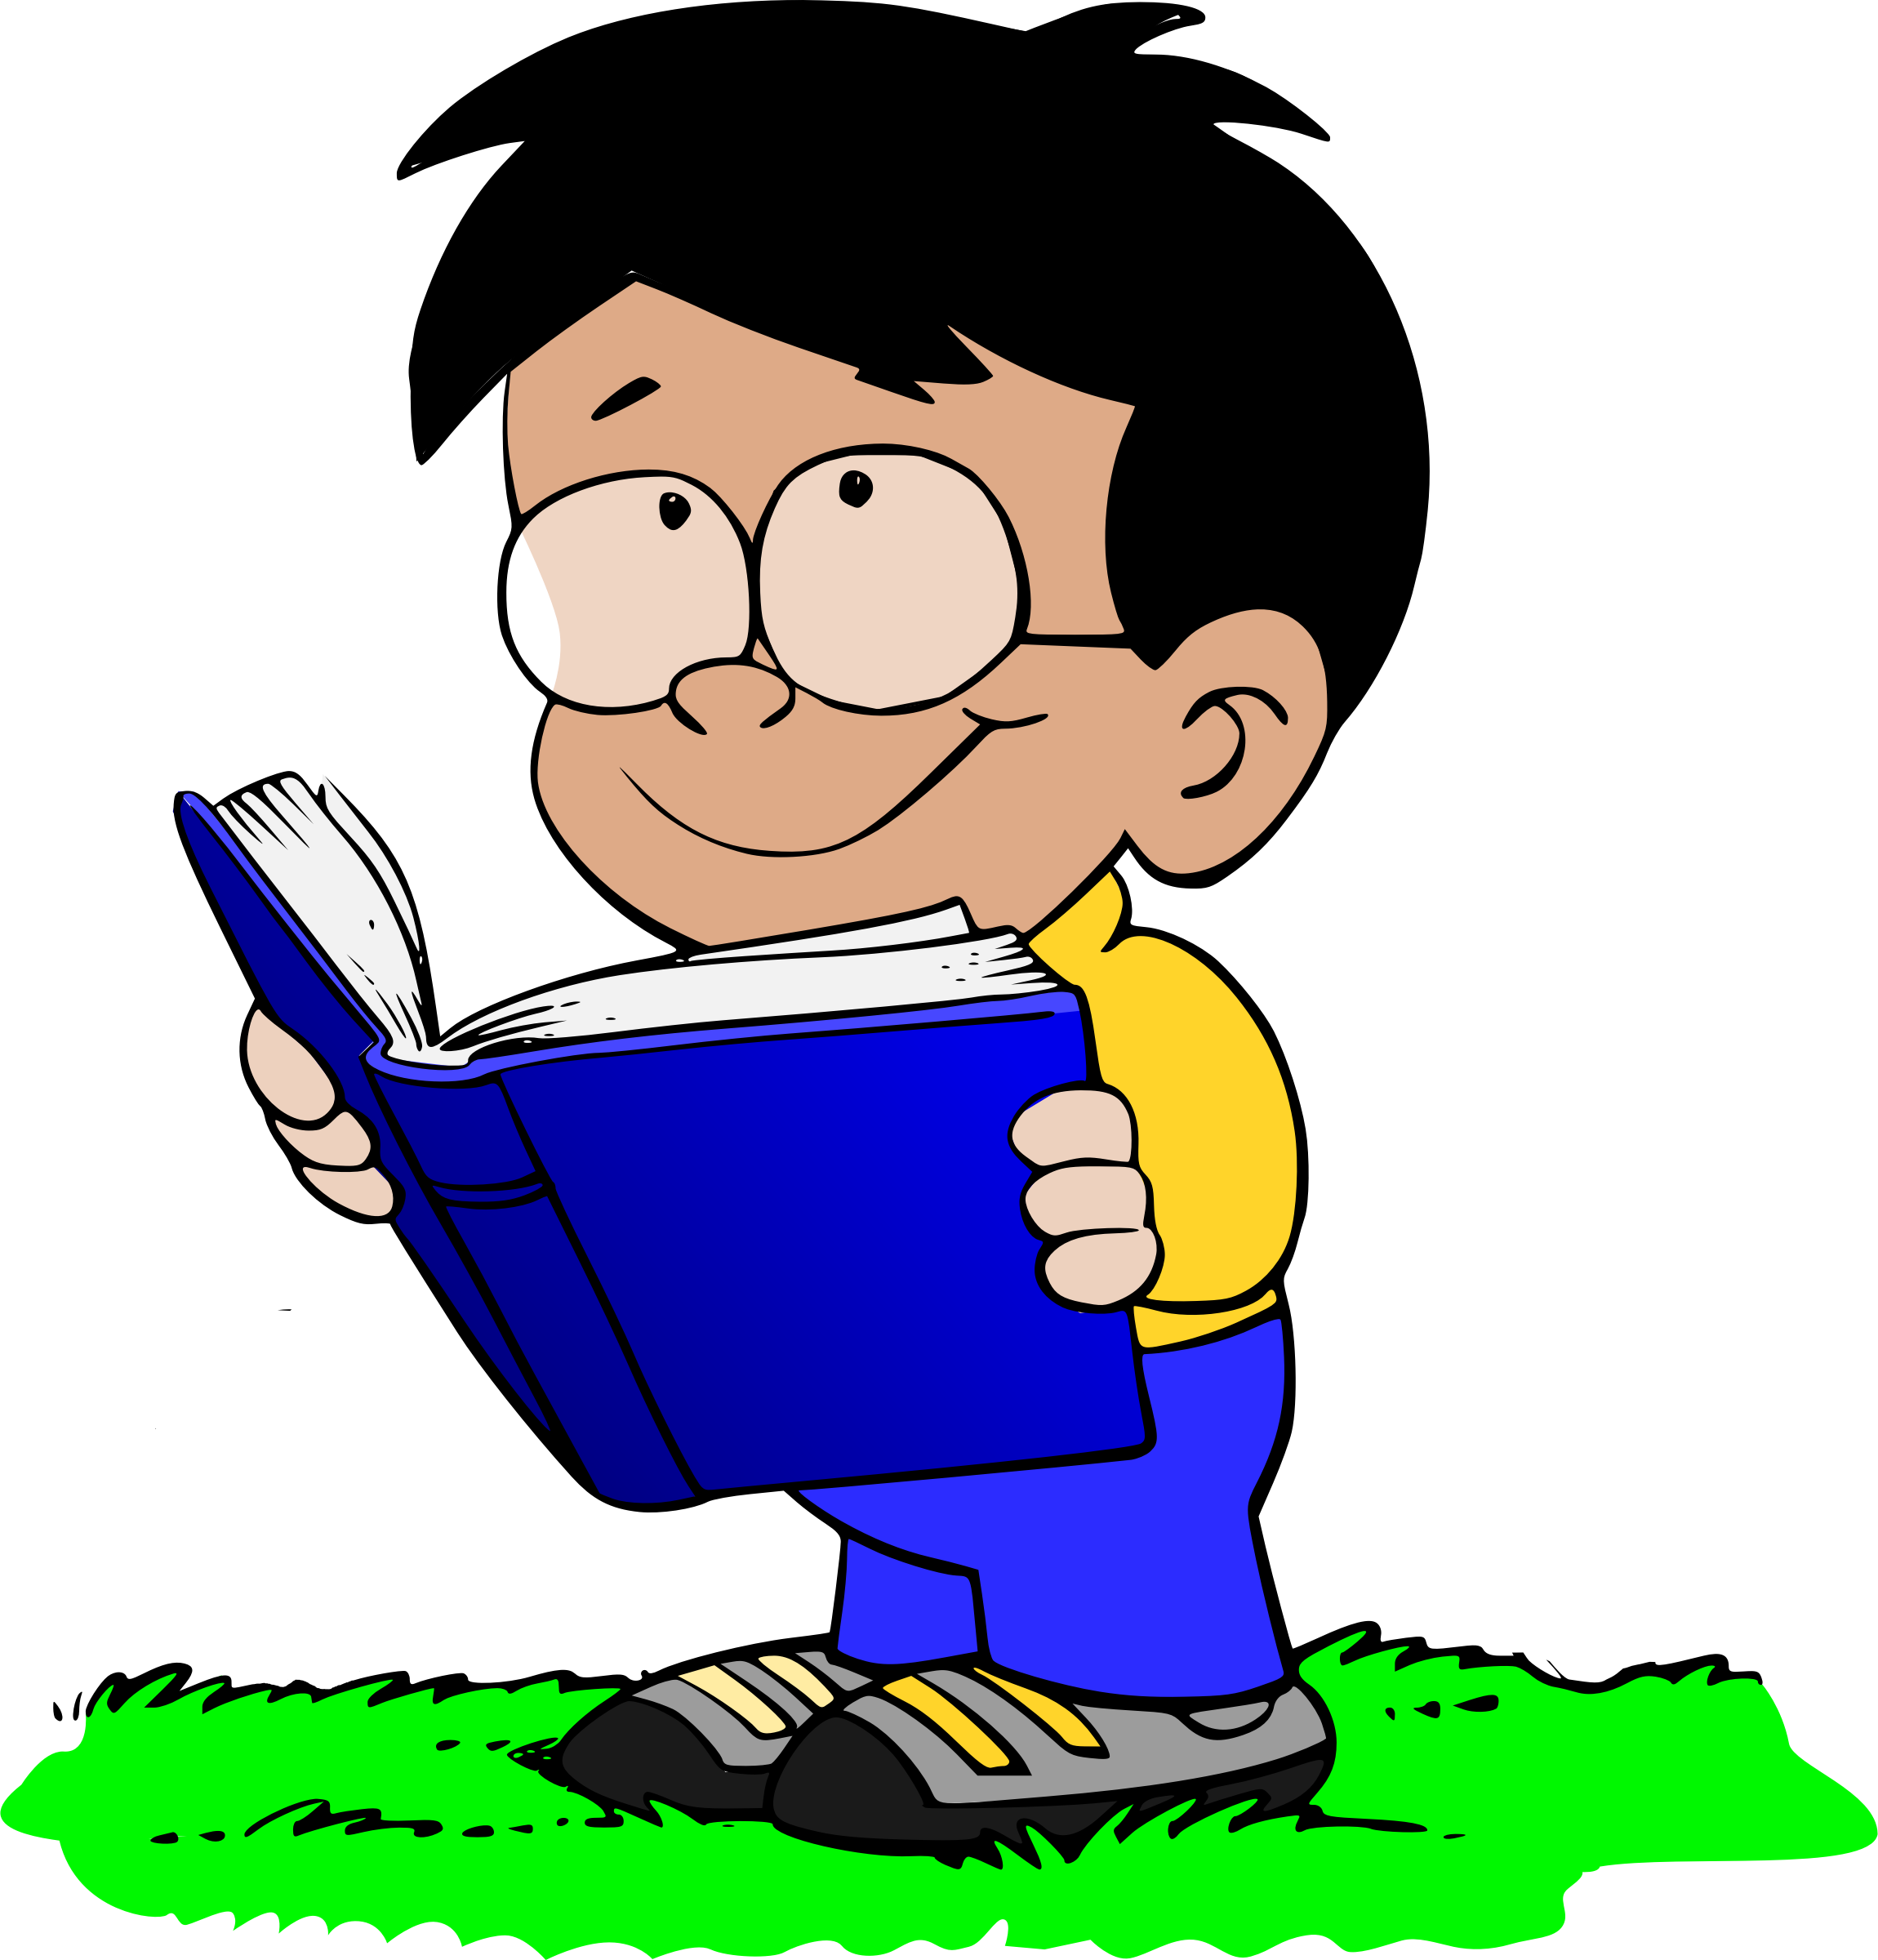 Child reading book clipart clip art royalty free library Clipart - Boy with Book clip art royalty free library